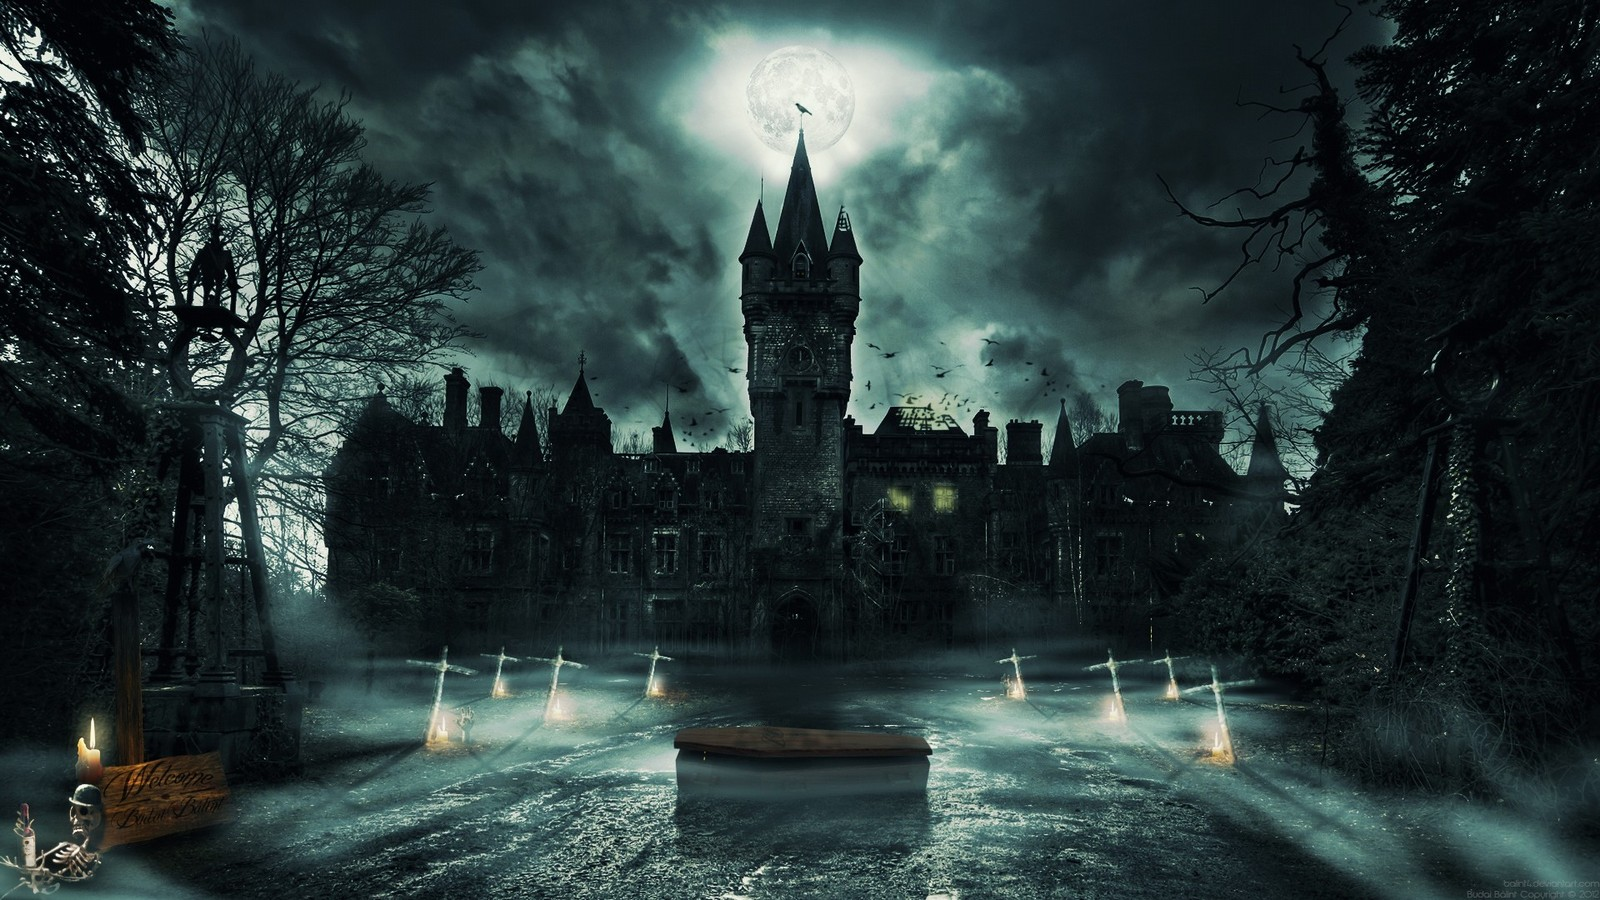 Wallpaper Haunted HD Wallpaper 3D Horror HQ Wallpaper Haunted House 1600x900